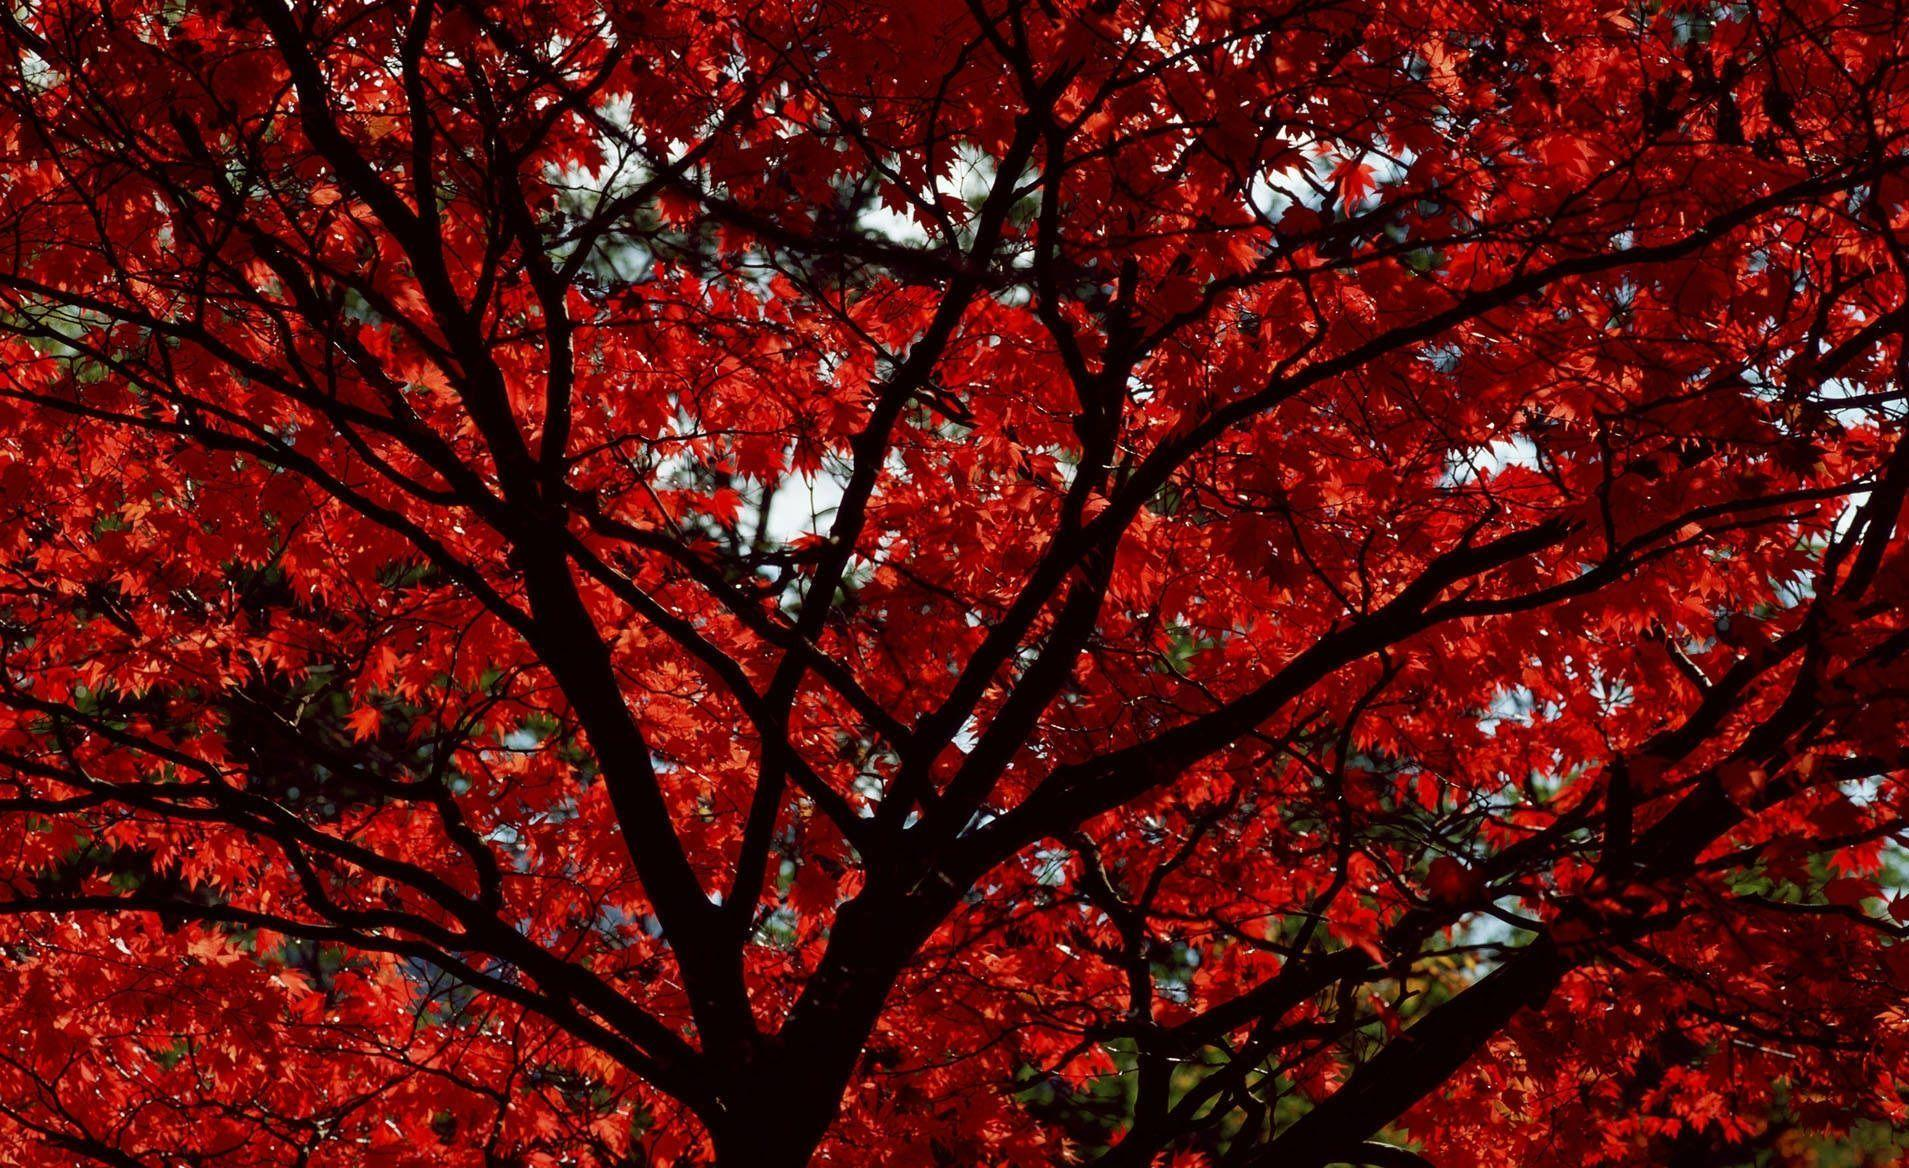 Labels Red Autumn Leaves Photography Hd Wallpapers For: Red Leaves Wallpapers